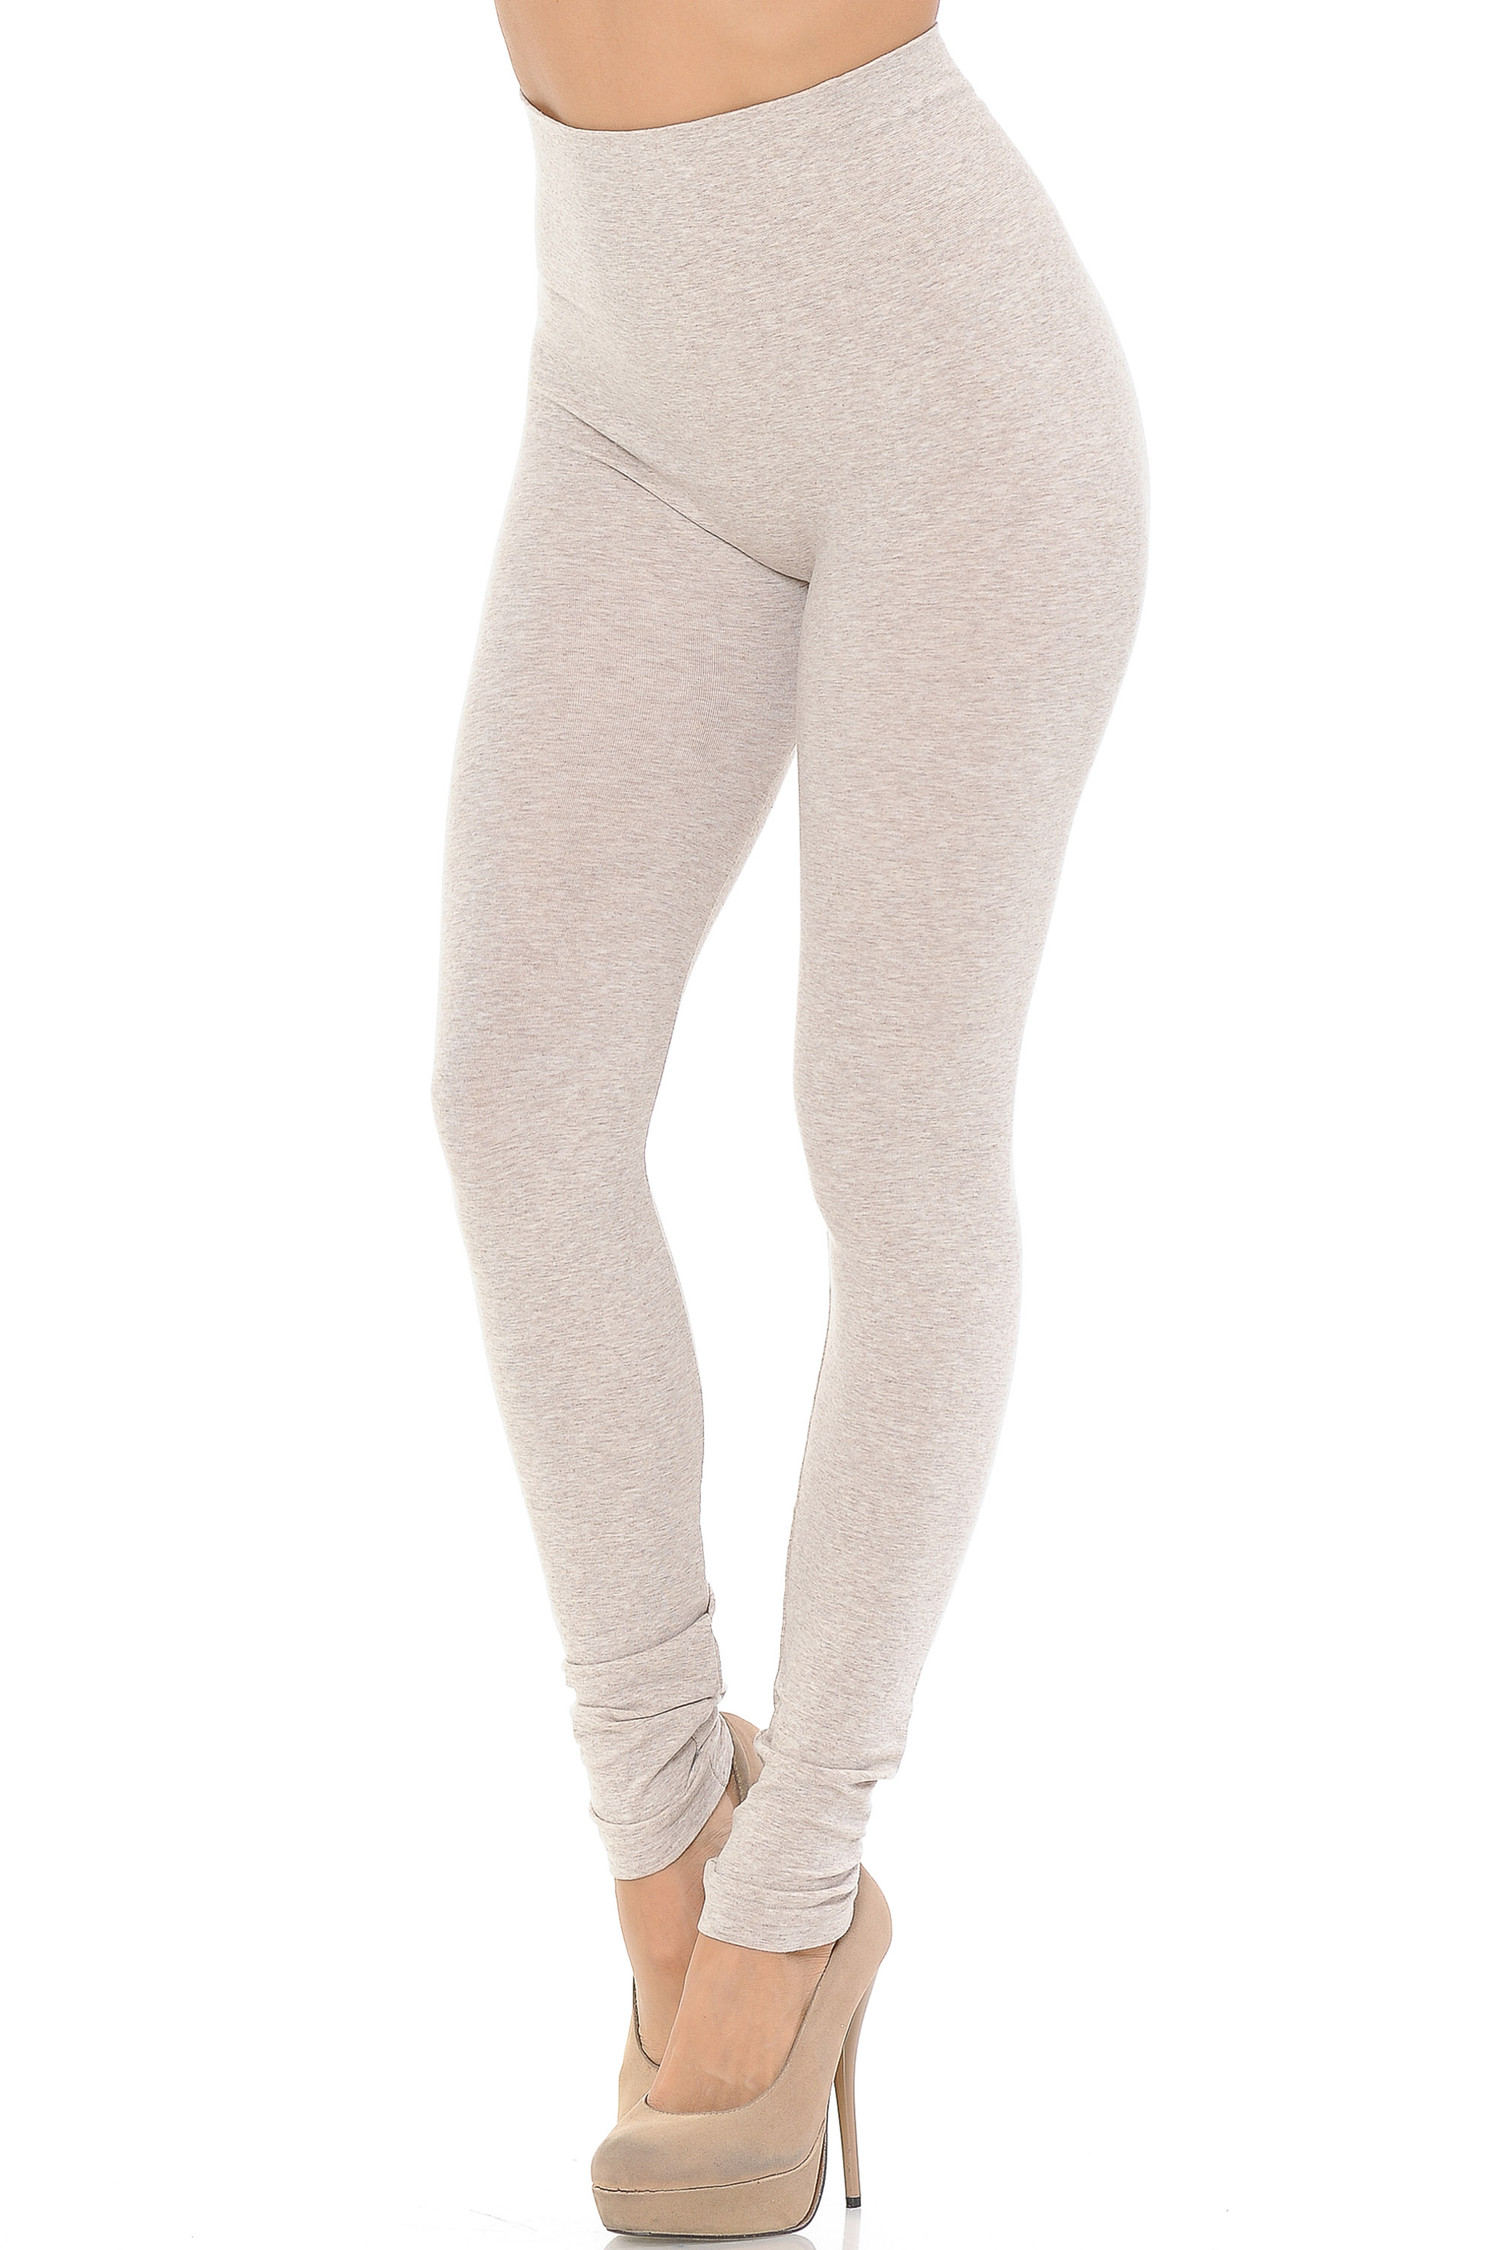 High Waisted Comfy Heathered Leggings